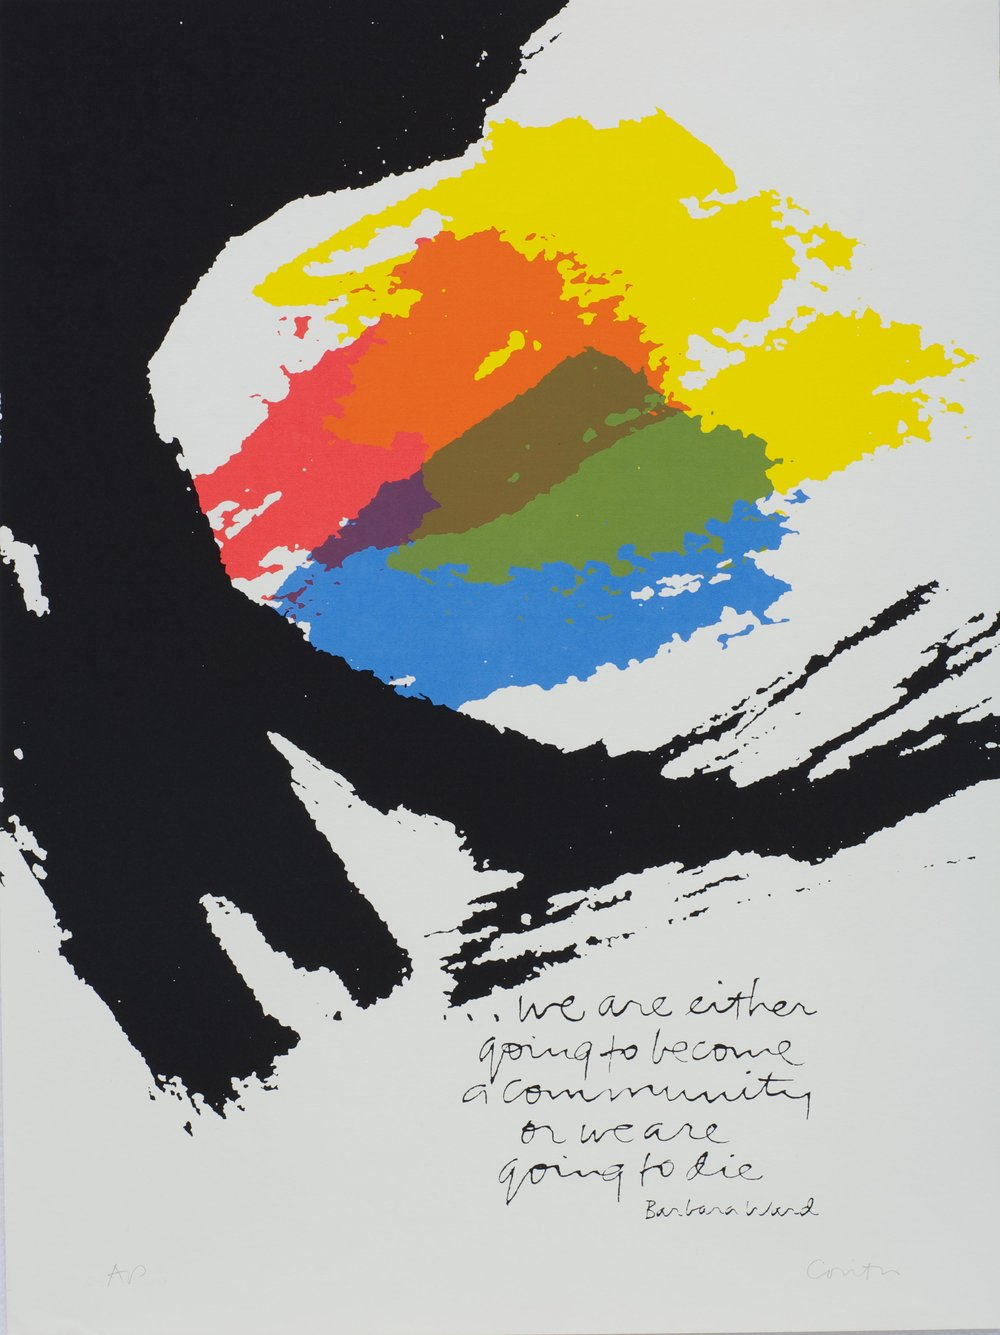 "Corita Kent. community, 1982. Serigraph, 24"" x 18"". Reprinted with permission of the Corita Art Center, Immaculate Heart Community, Los Angeles, photograph by Arthur Evans."